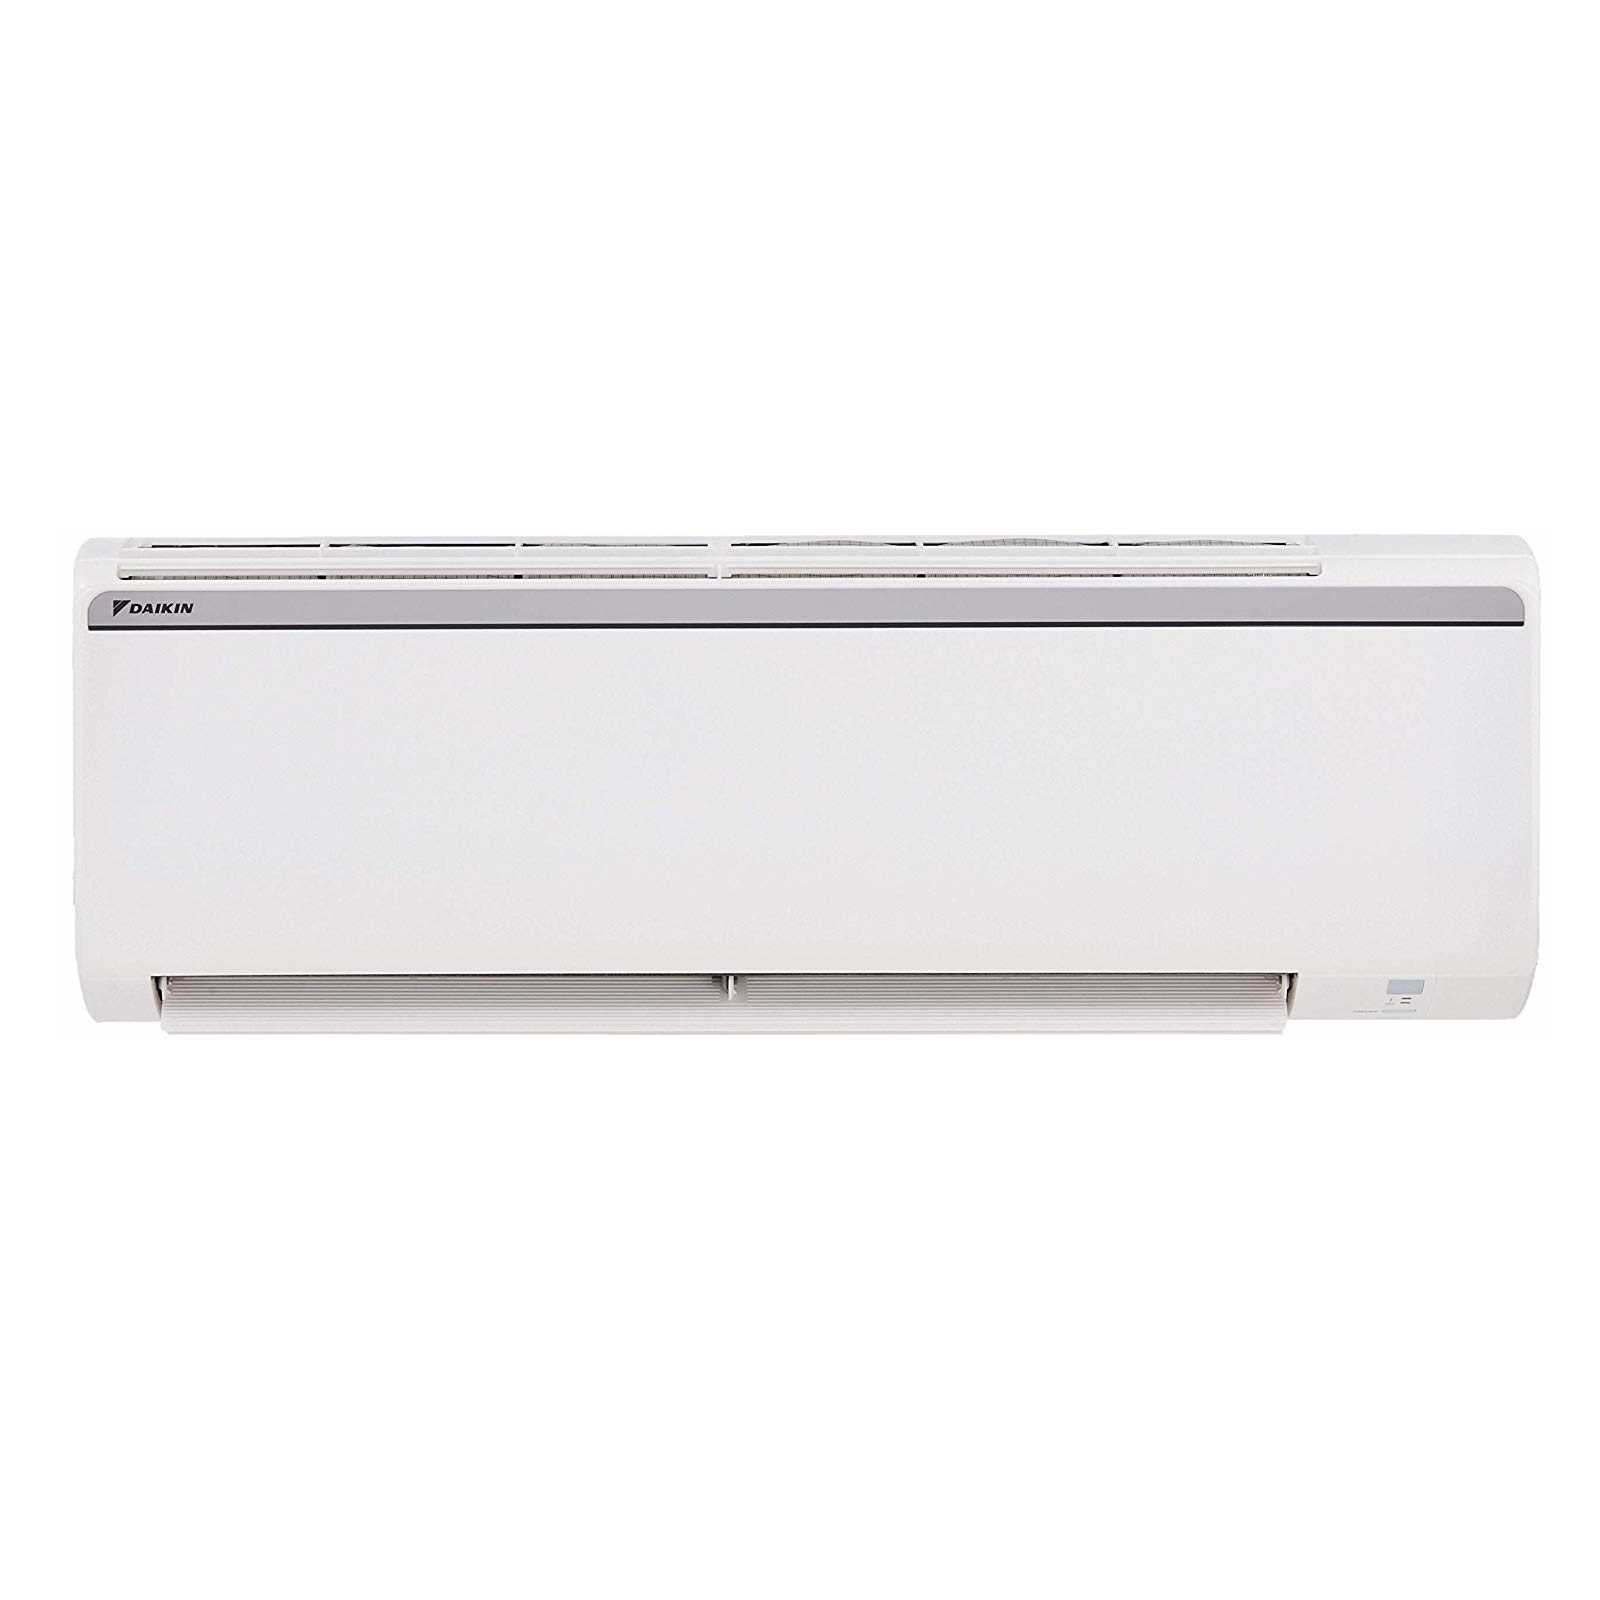 Daikin FTL50TV16W4 1.5 Ton 3 Star 2018 Split AC